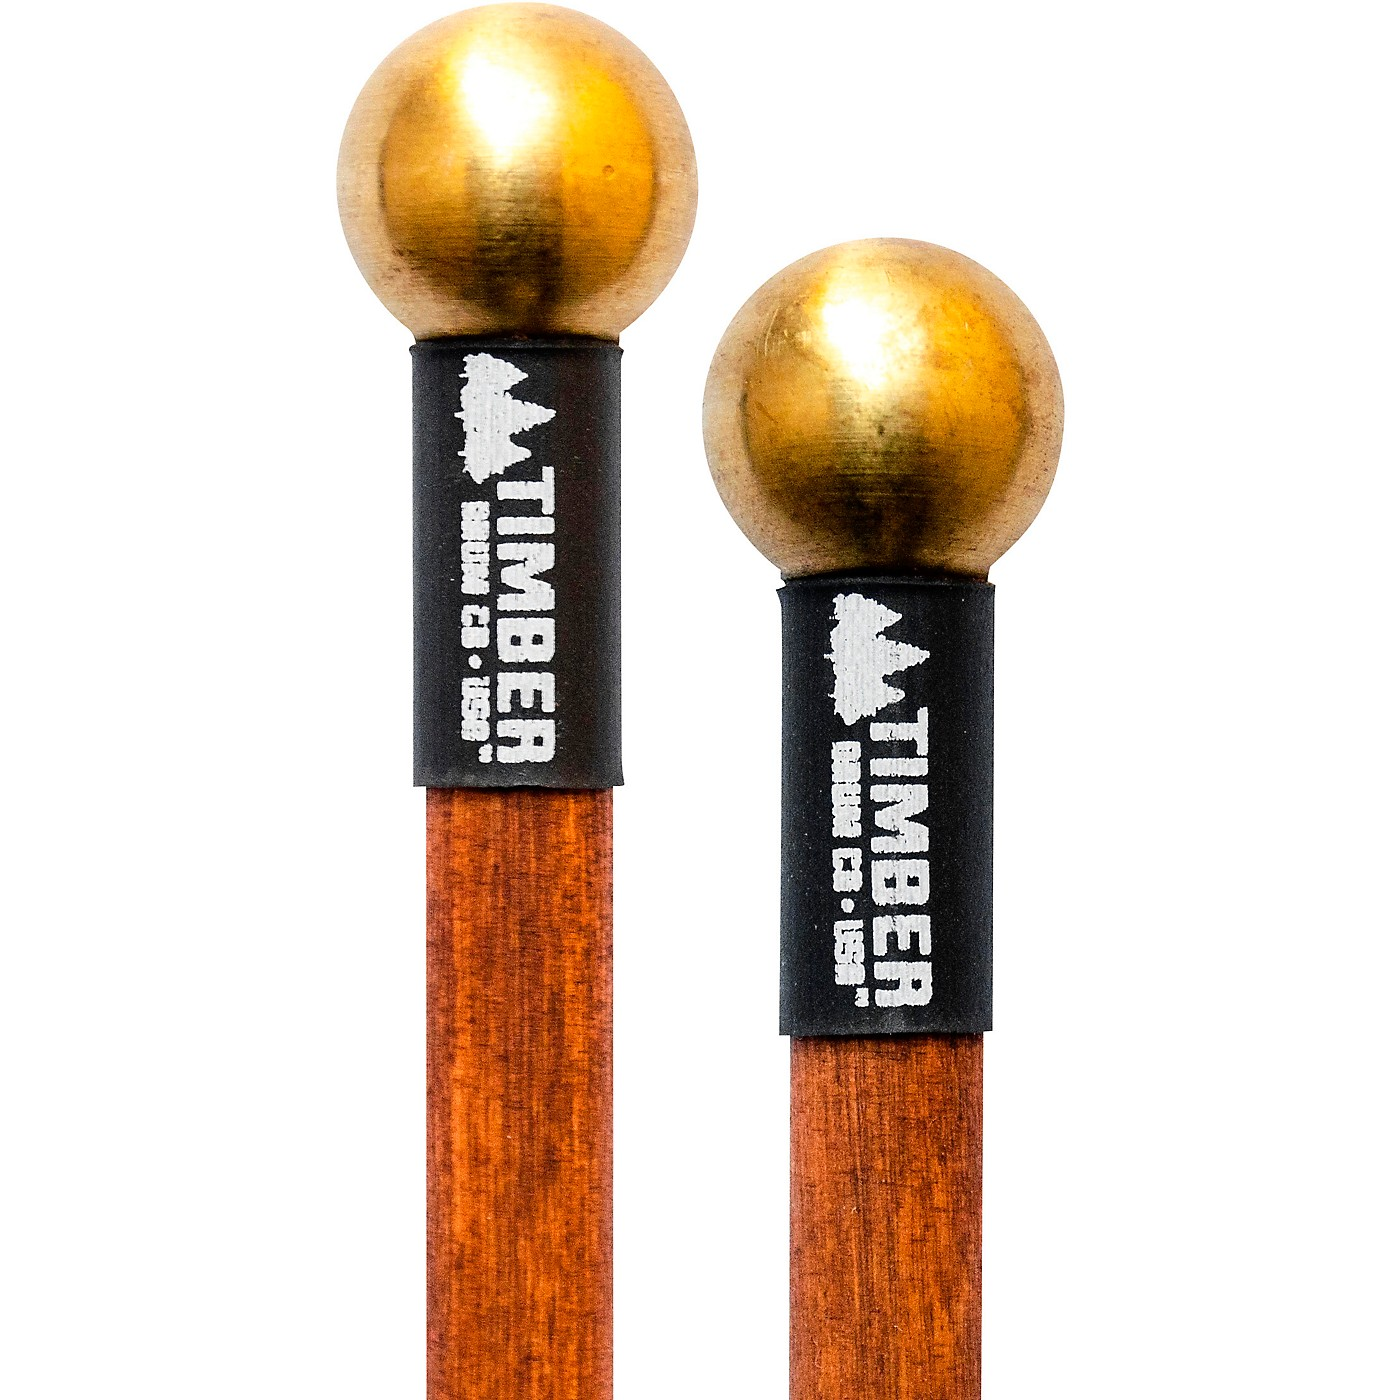 Timber Drum Company Hard Brass Bell Mallets with Birch Handles thumbnail